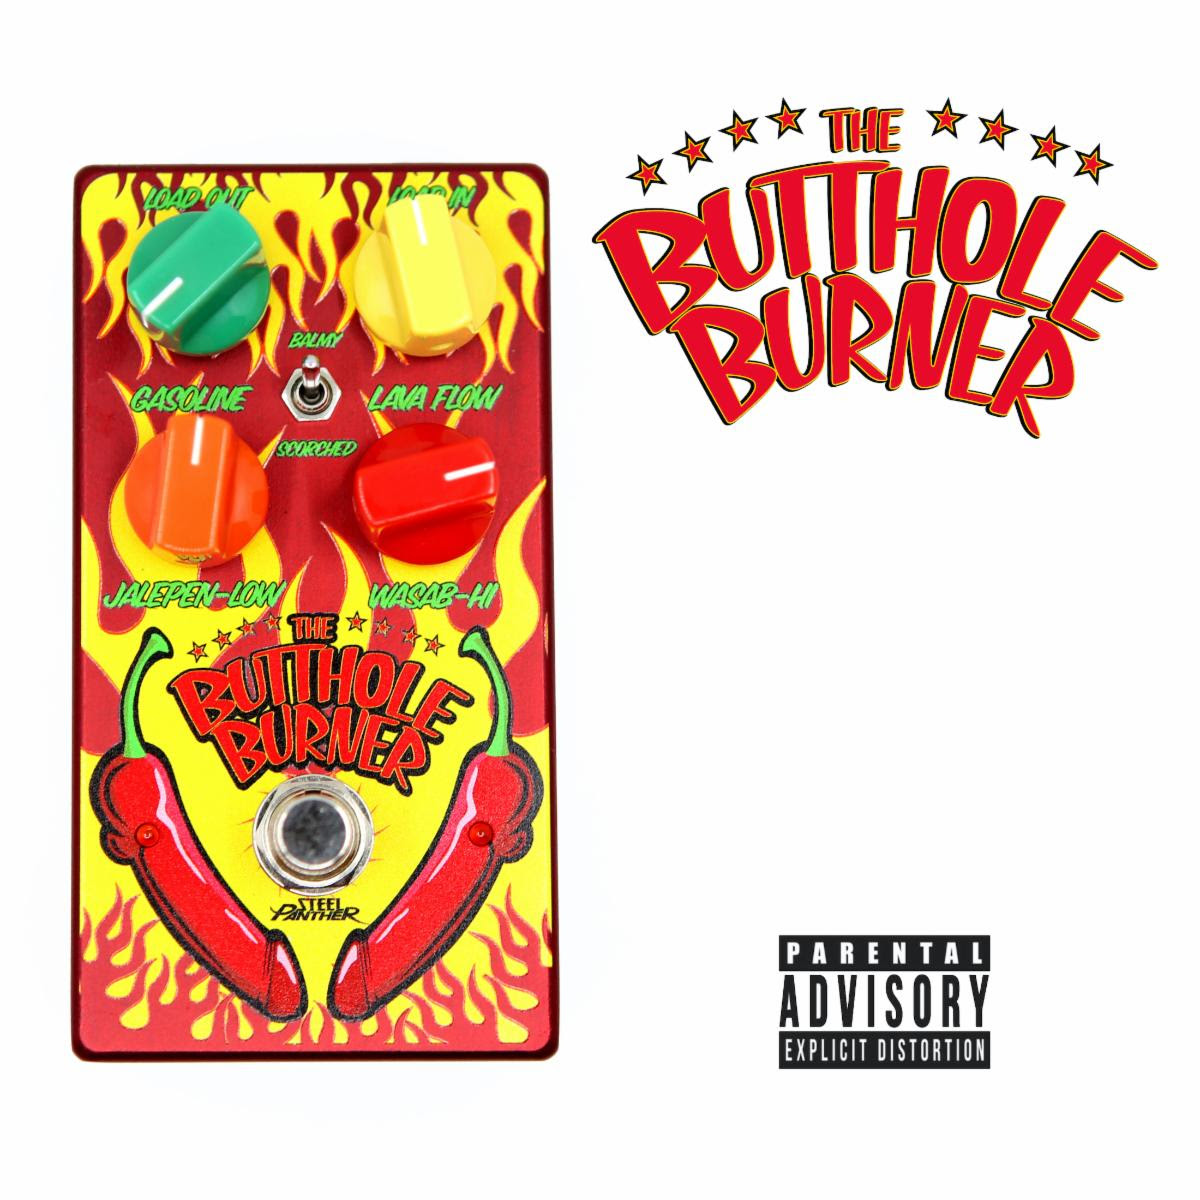 """Steel Panther Unveil Their """"Butthole Burner"""" Guitar Effects Pedal"""